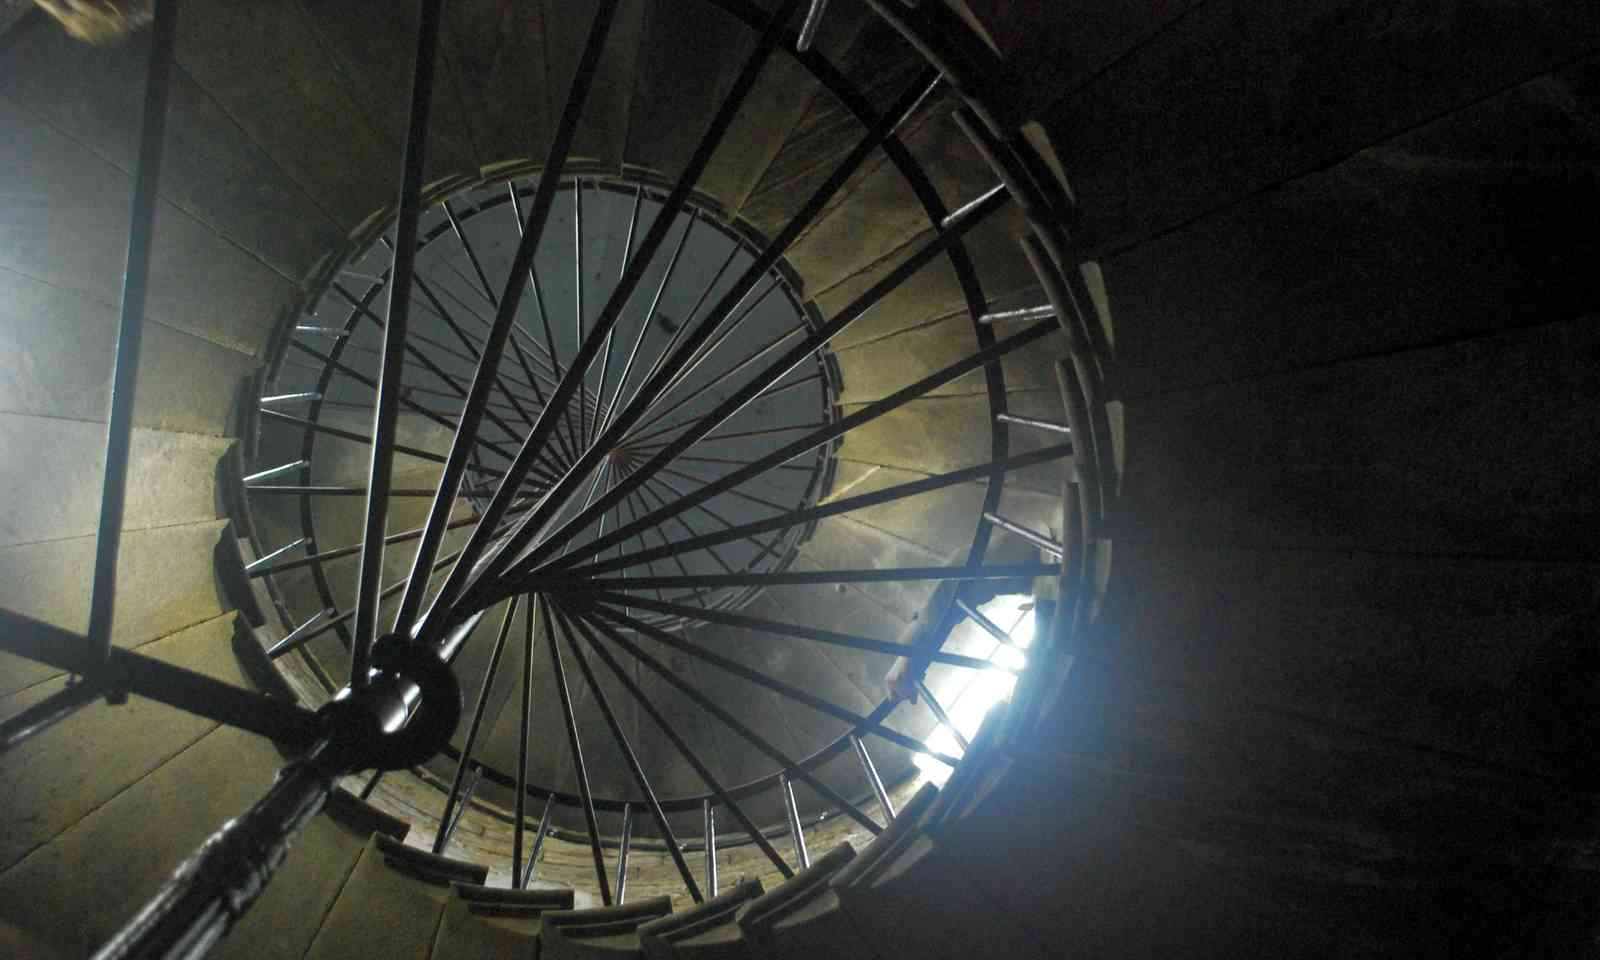 Spiral staircase, St Isaac's (Meraid Griffin)